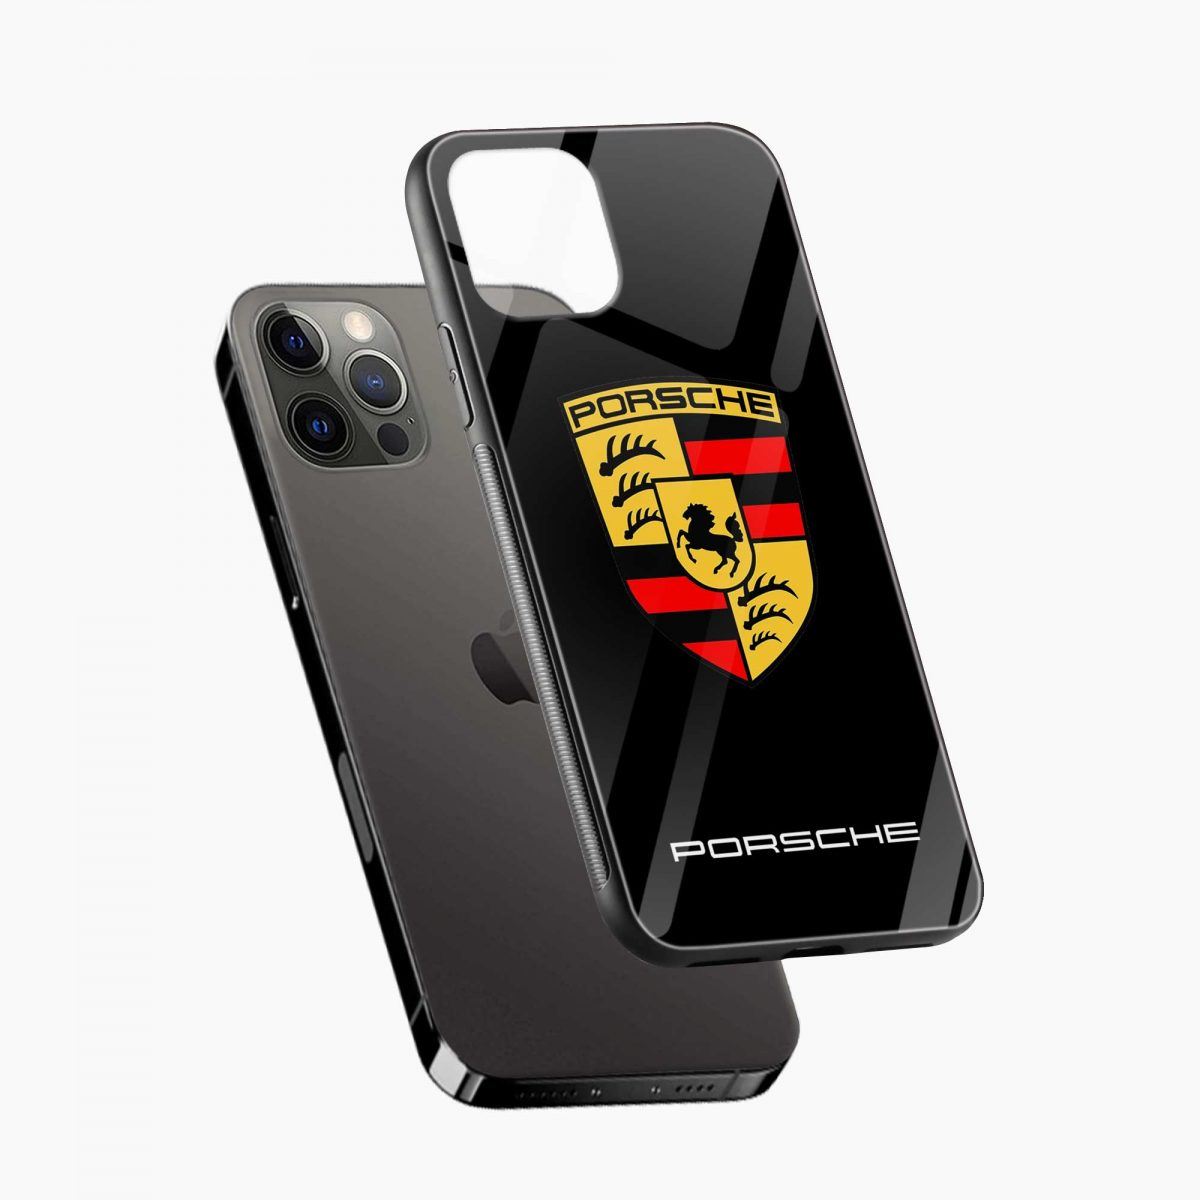 prosche iphone pro back cover diagonal view